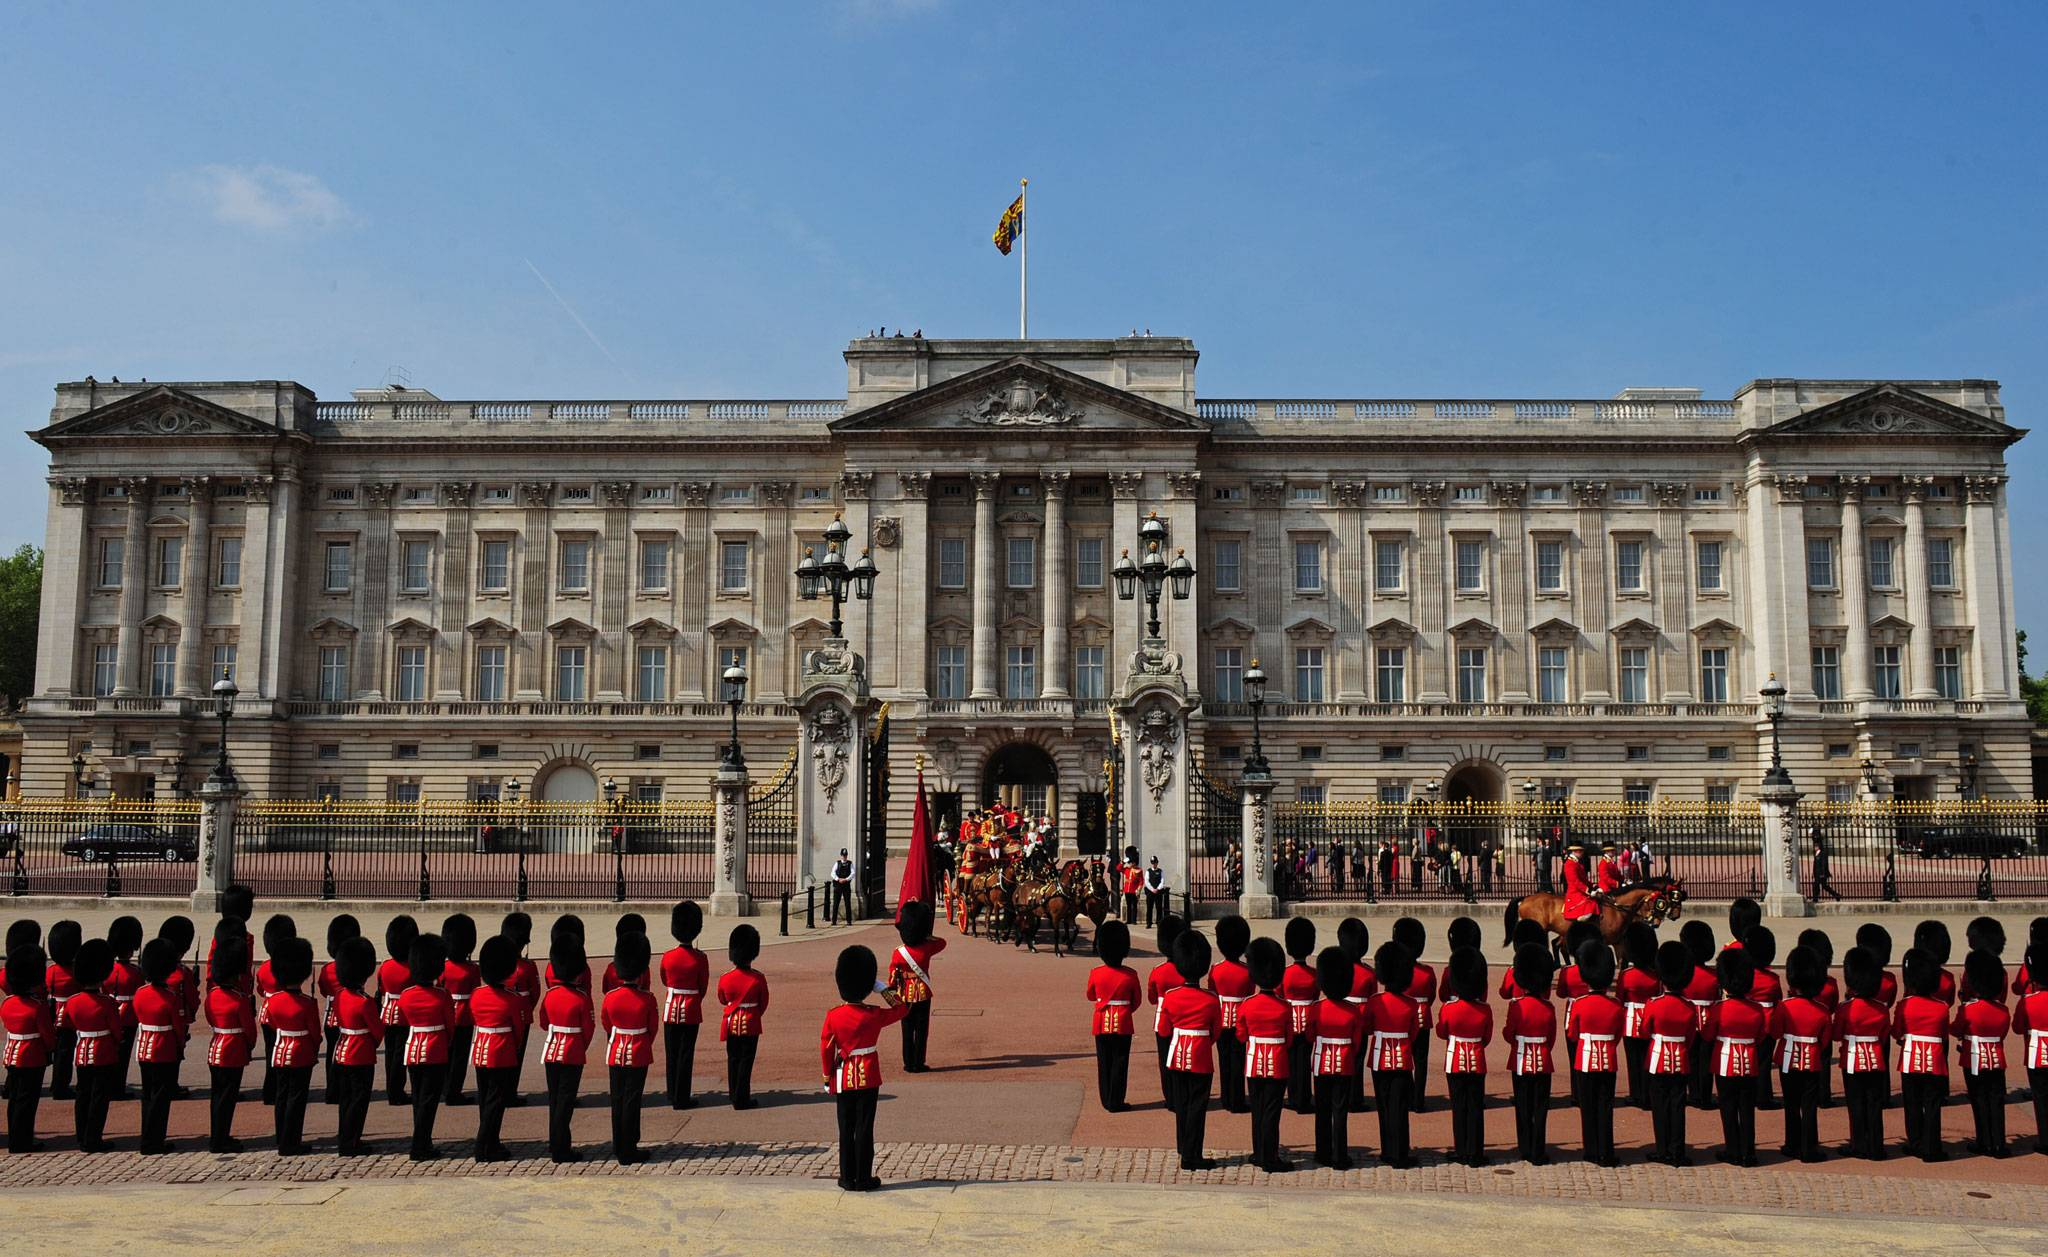 Buckingham Palace London, Buckingham Palace - The Royal Residence |